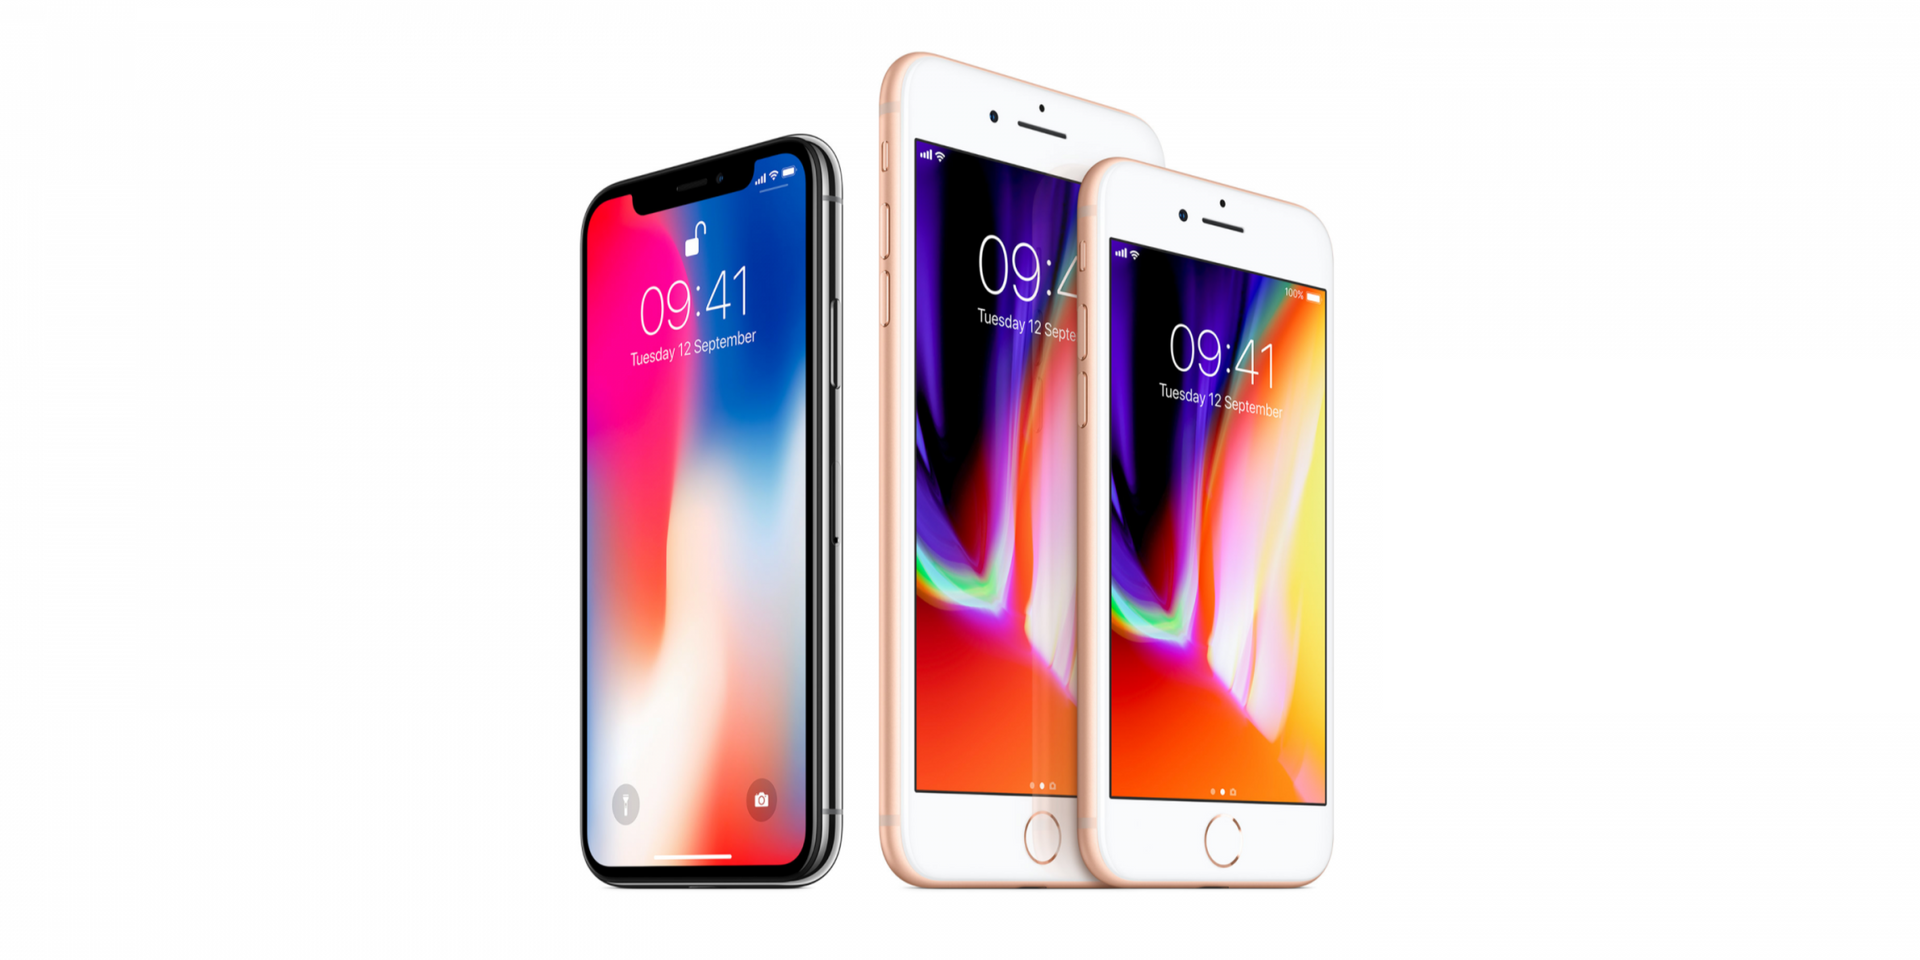 iPhone 8 and iPhone X: the important features you should take note of